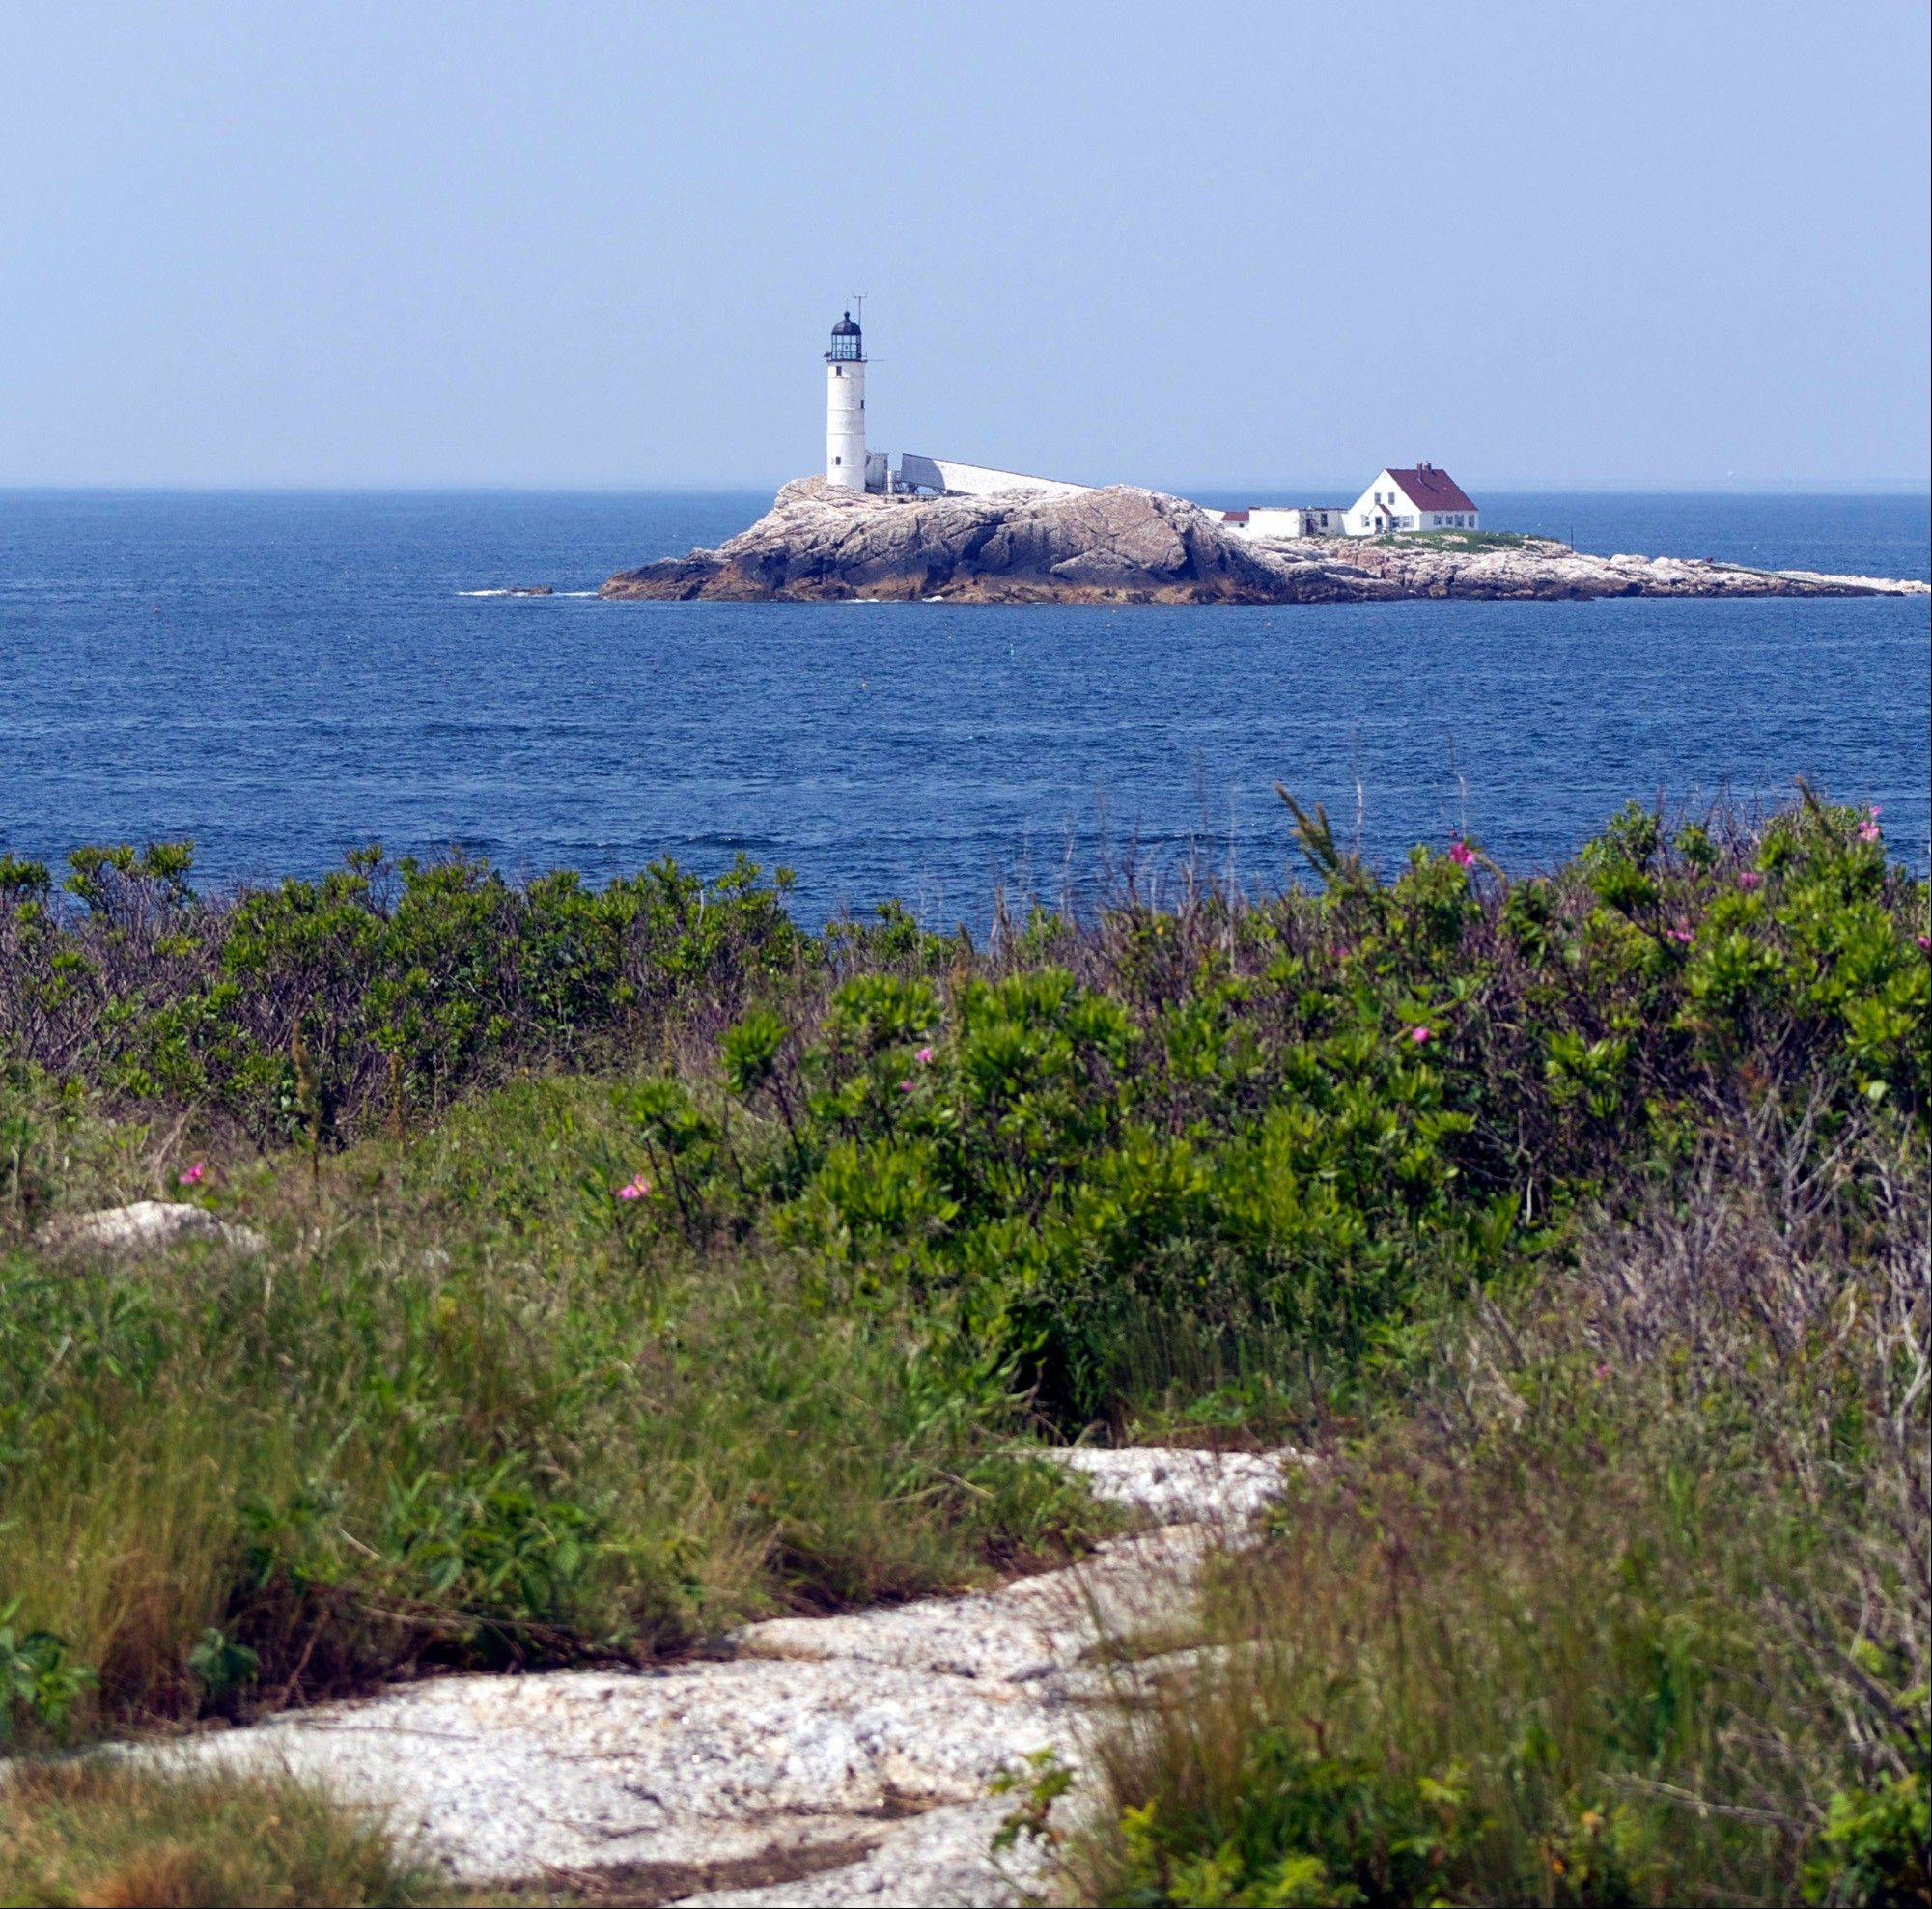 The lighthouse on White Island.